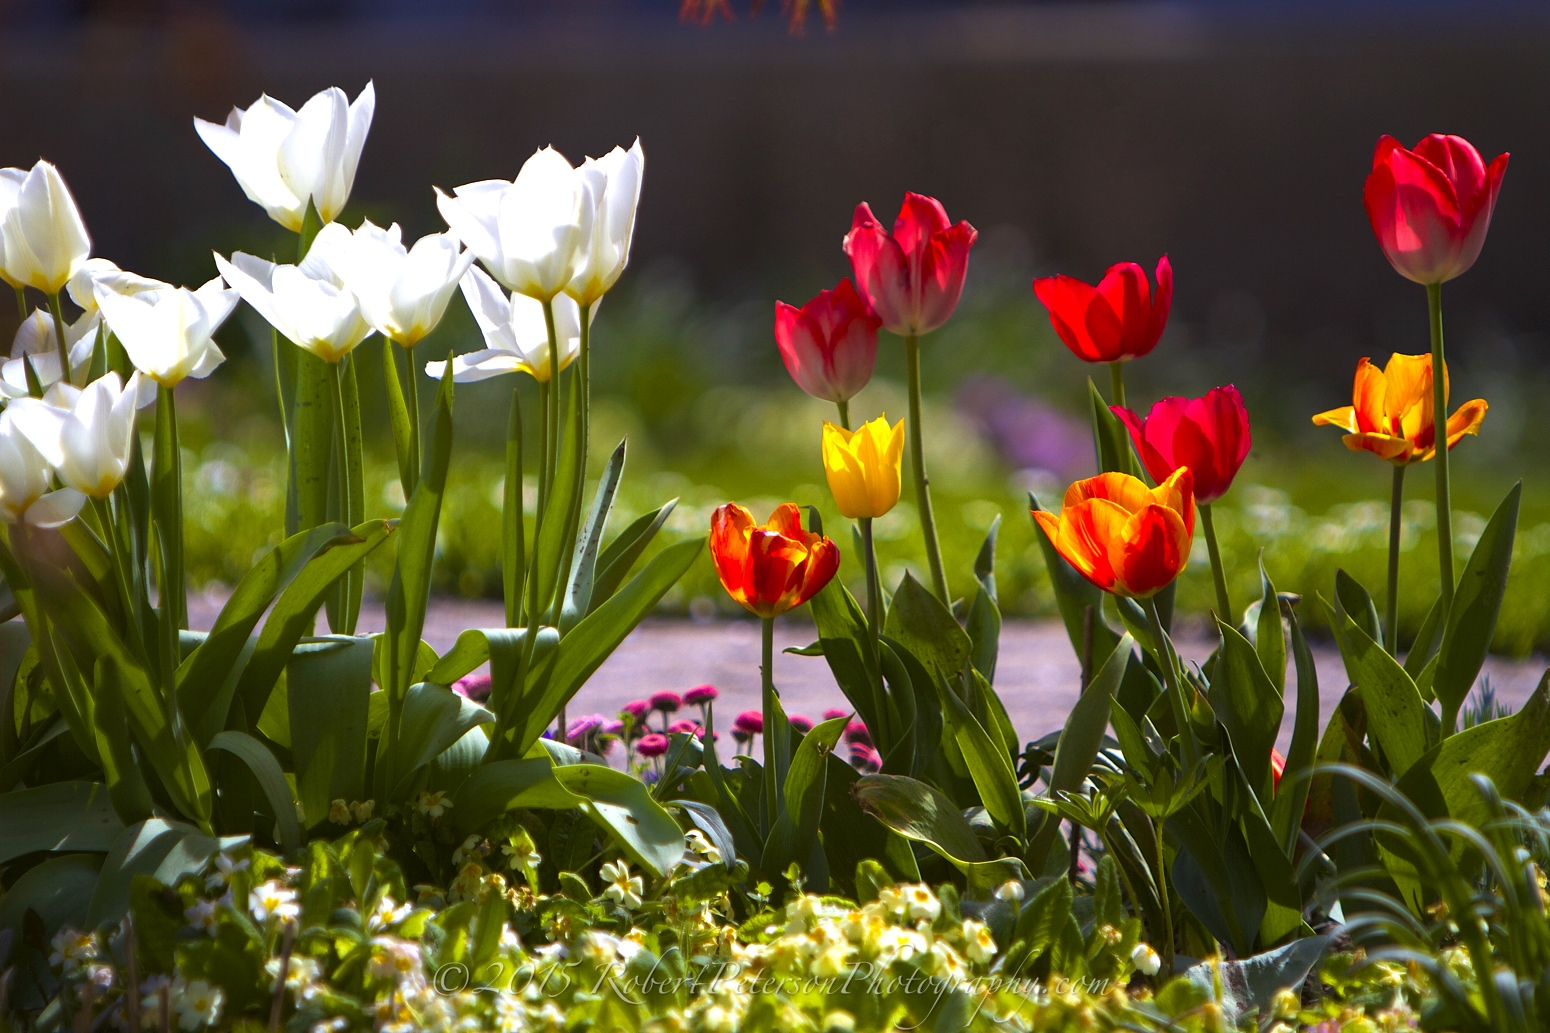 2015-04-15 Tulips Robert Peterson Photography-12m 1550pxRPP